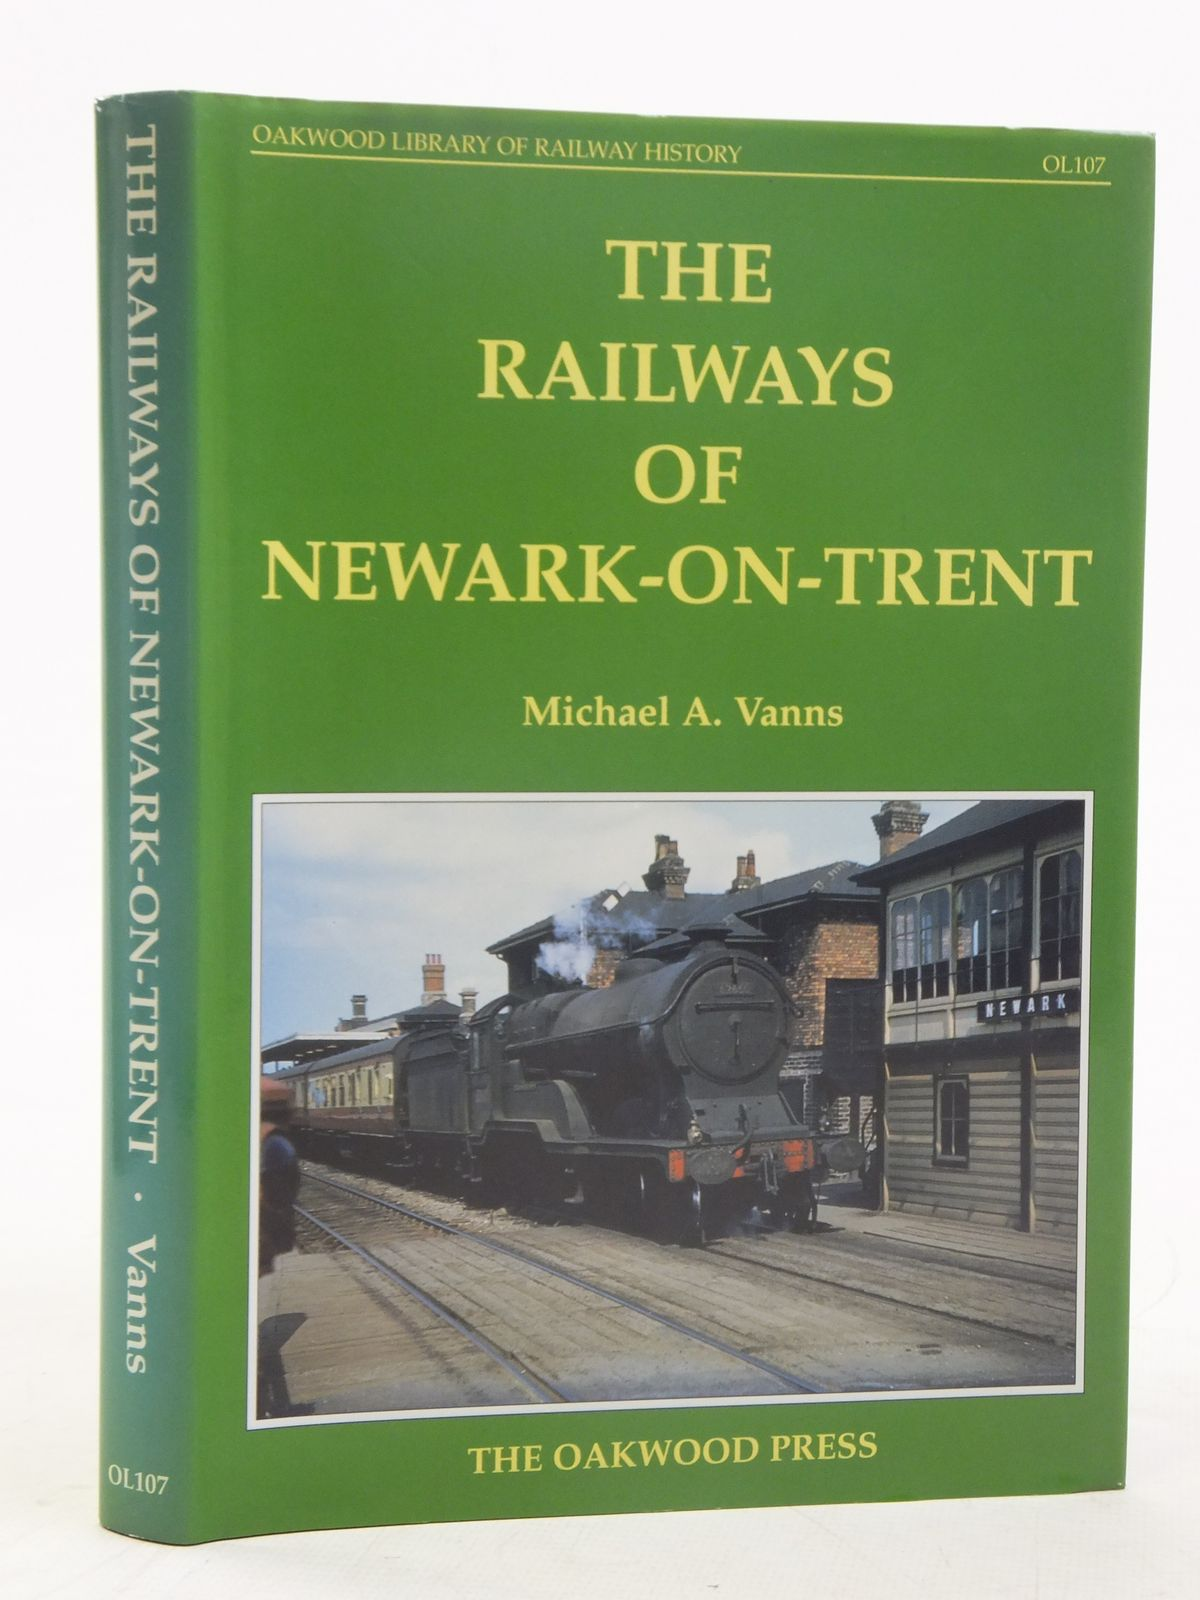 Photo of THE RAILWAYS OF NEWARK-ON-TRENT written by Vanns, Michael A. published by The Oakwood Press (STOCK CODE: 1606954)  for sale by Stella & Rose's Books